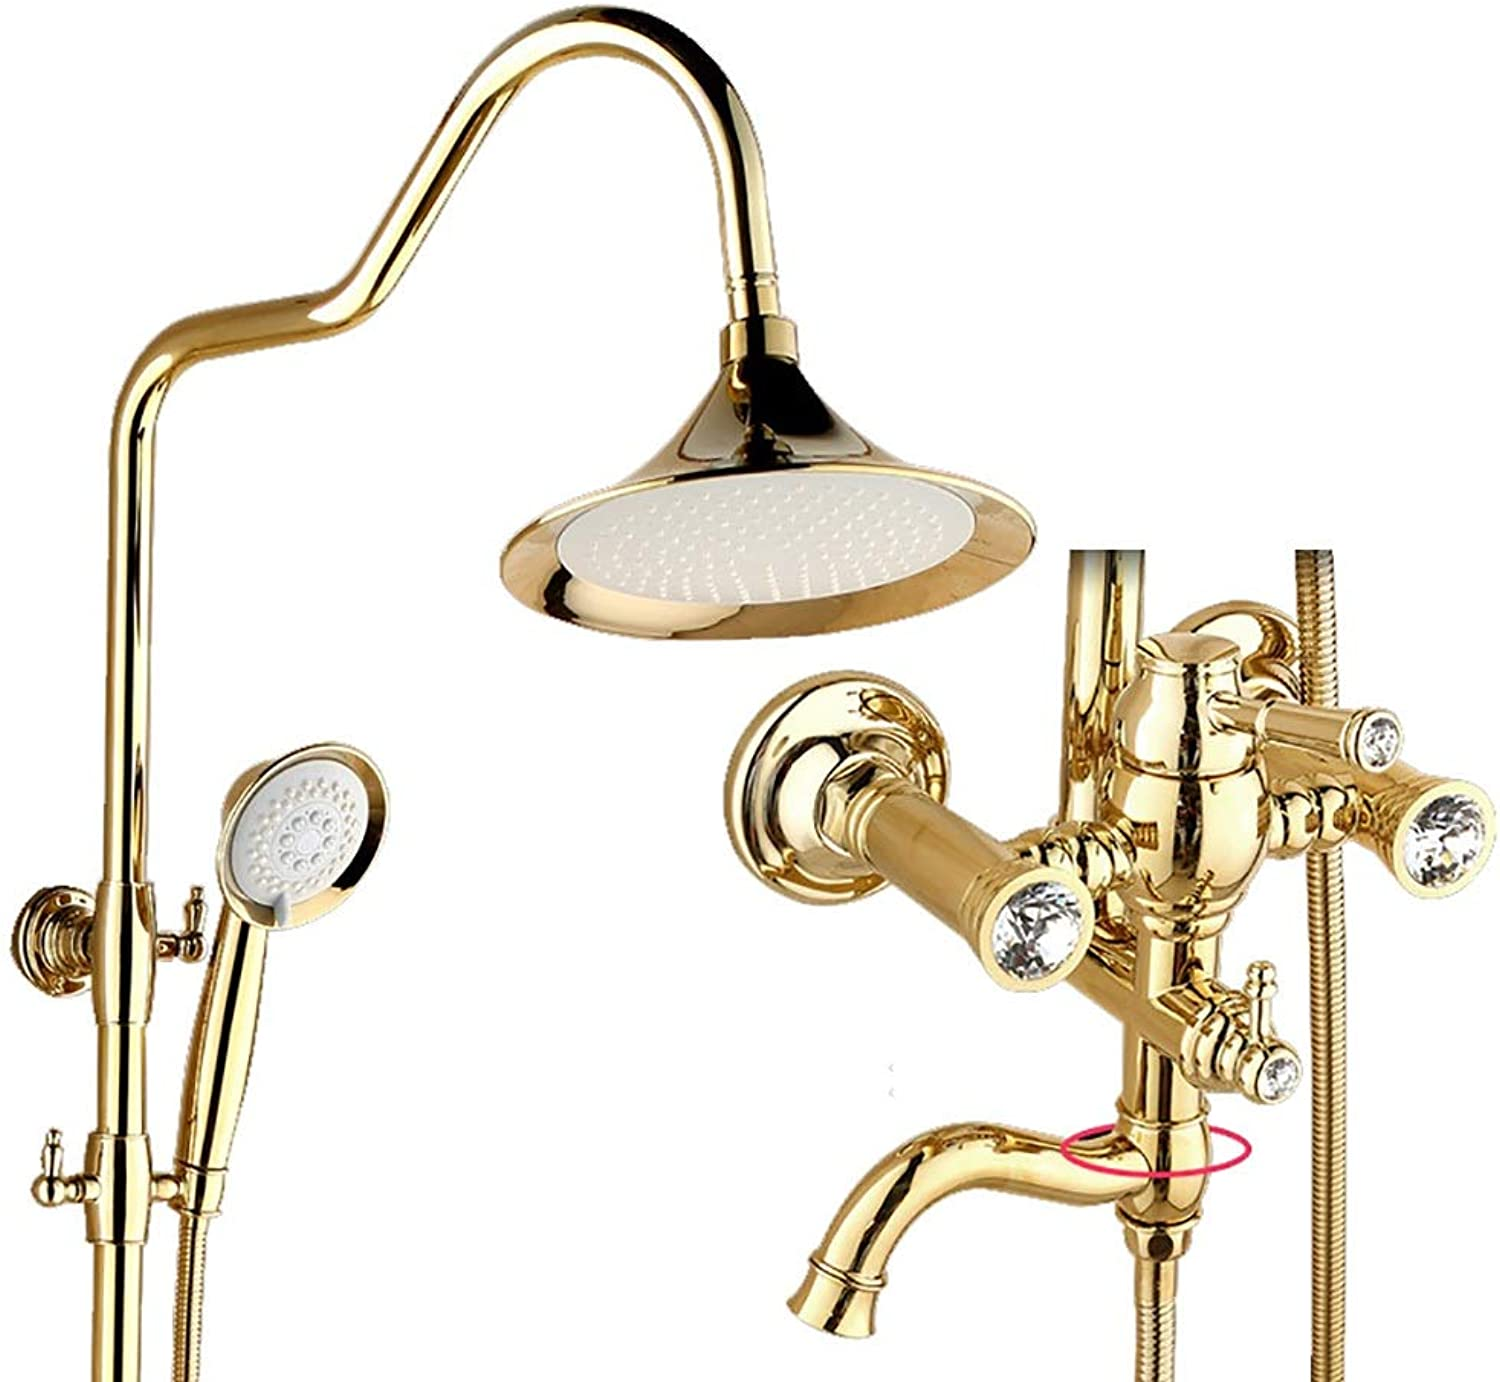 WYRSXPY Shower Bath European Shower Set, Brass Wall-mounted Bathroom Hand Shower Free Lifting redate Cold hot Water Tap (color   gold, Size   C)